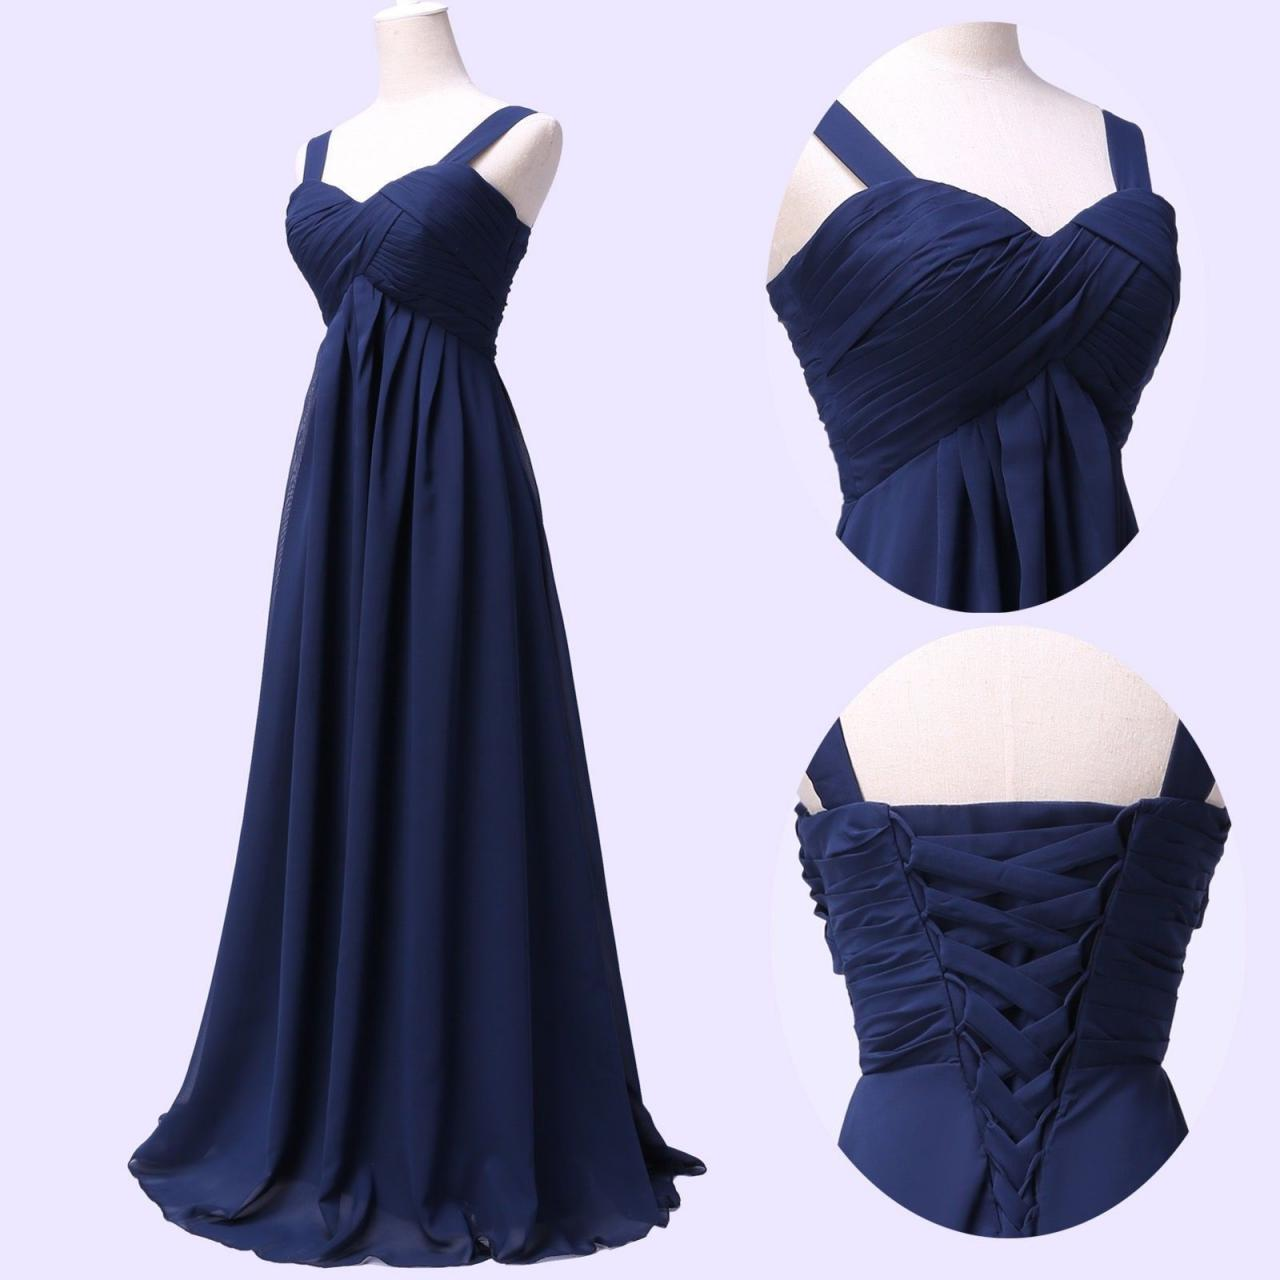 e72d49608d6 Spaghetti Straps Navy Blue Chiffon Bridesmaid Dress